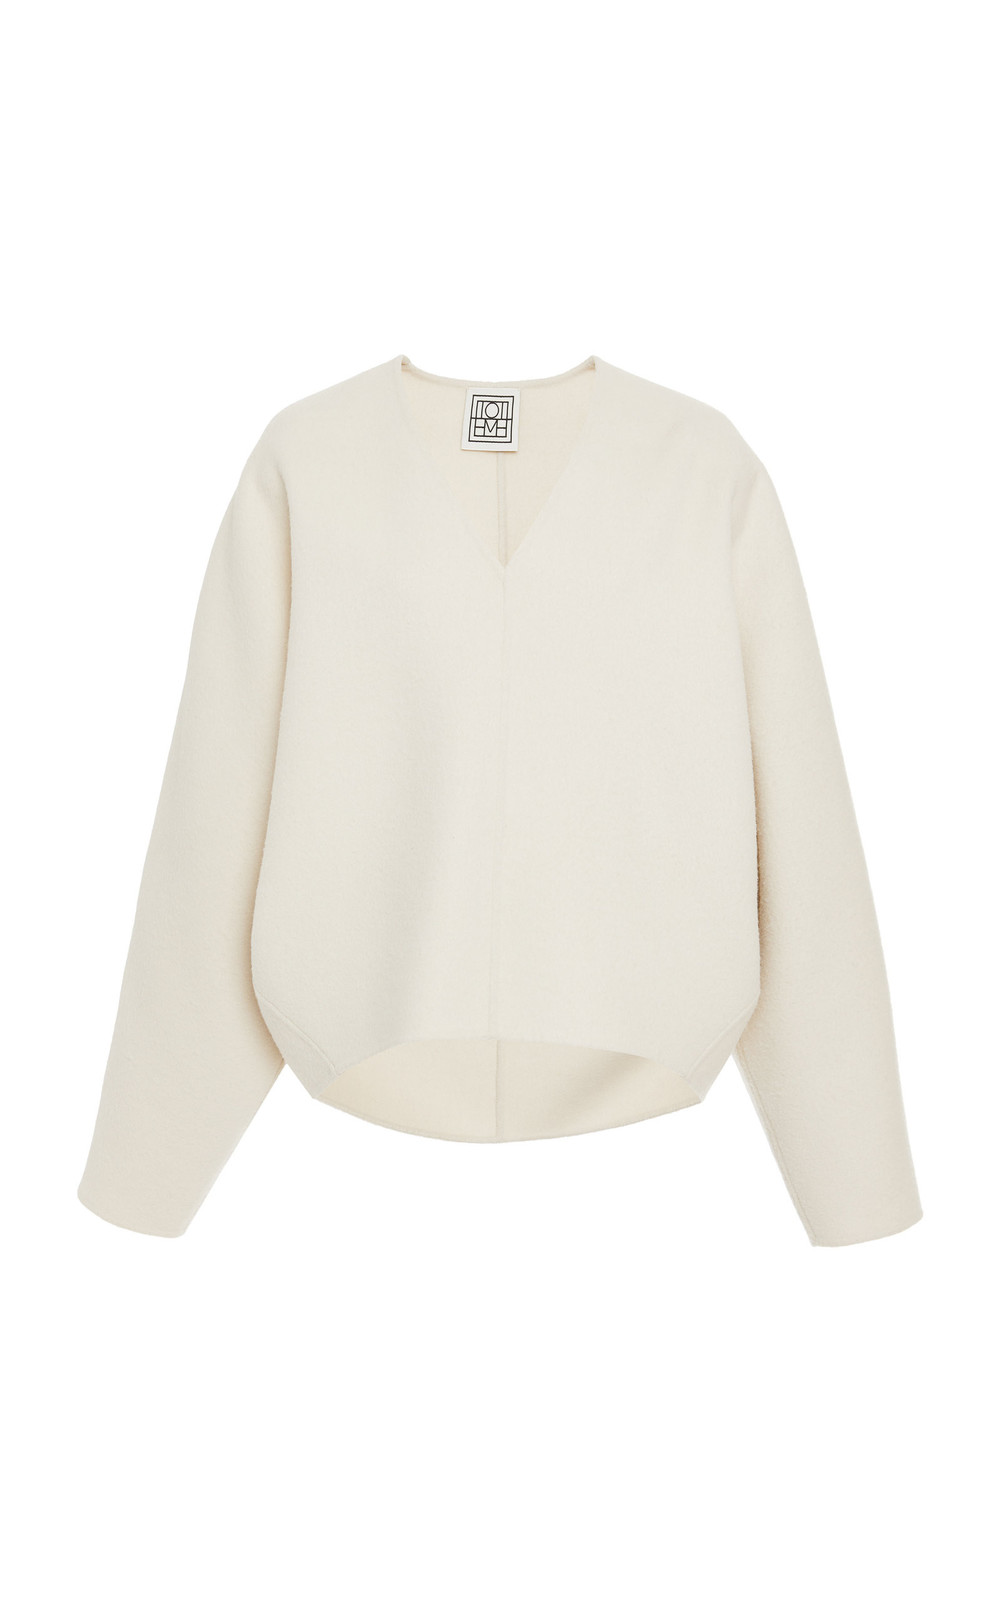 Toteme Rennes Wool And Cashmere Sweater in ivory